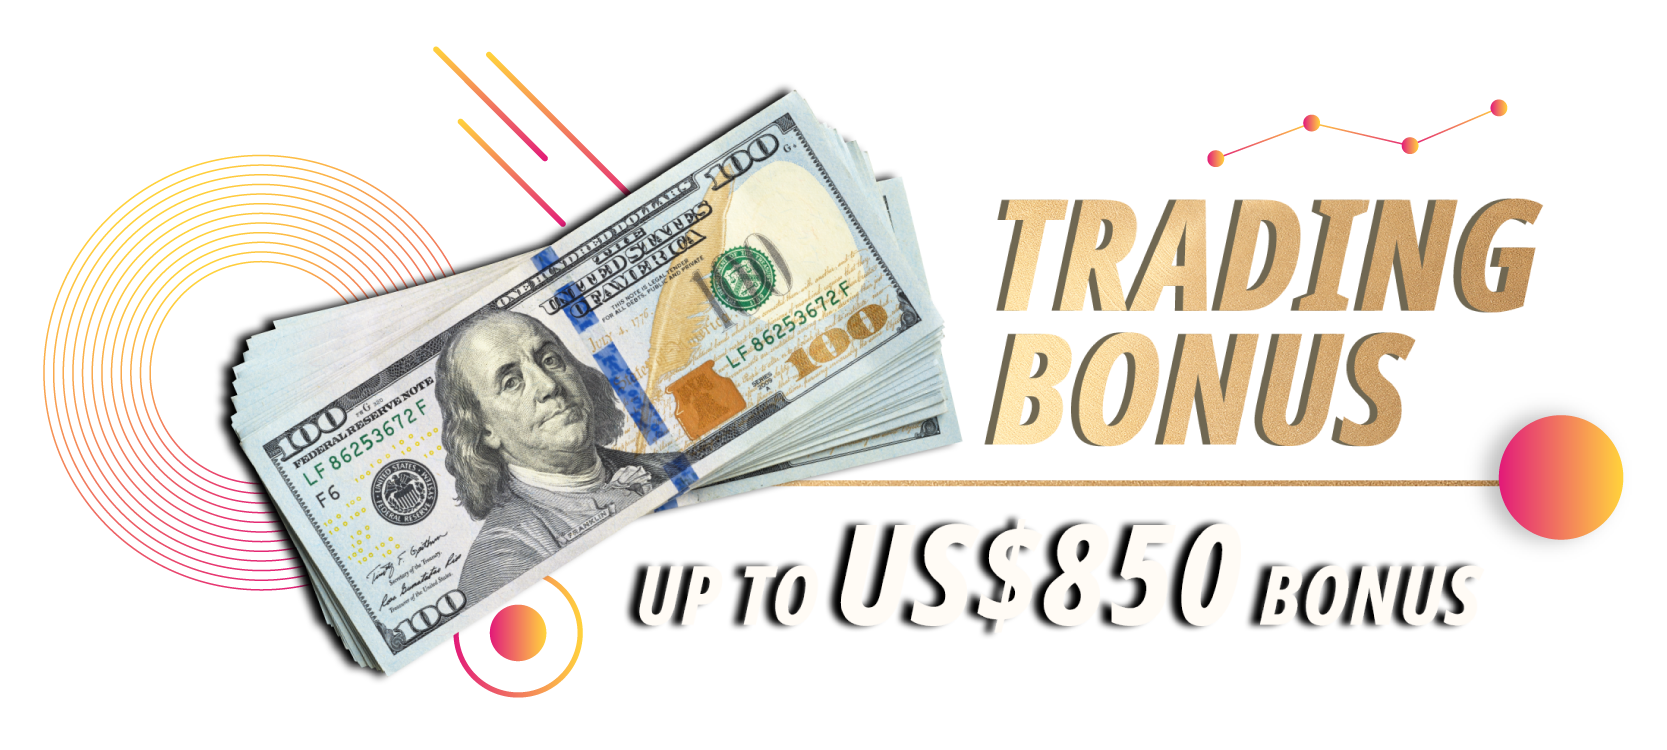 Trading Bonus Get up to US$850 Bonus